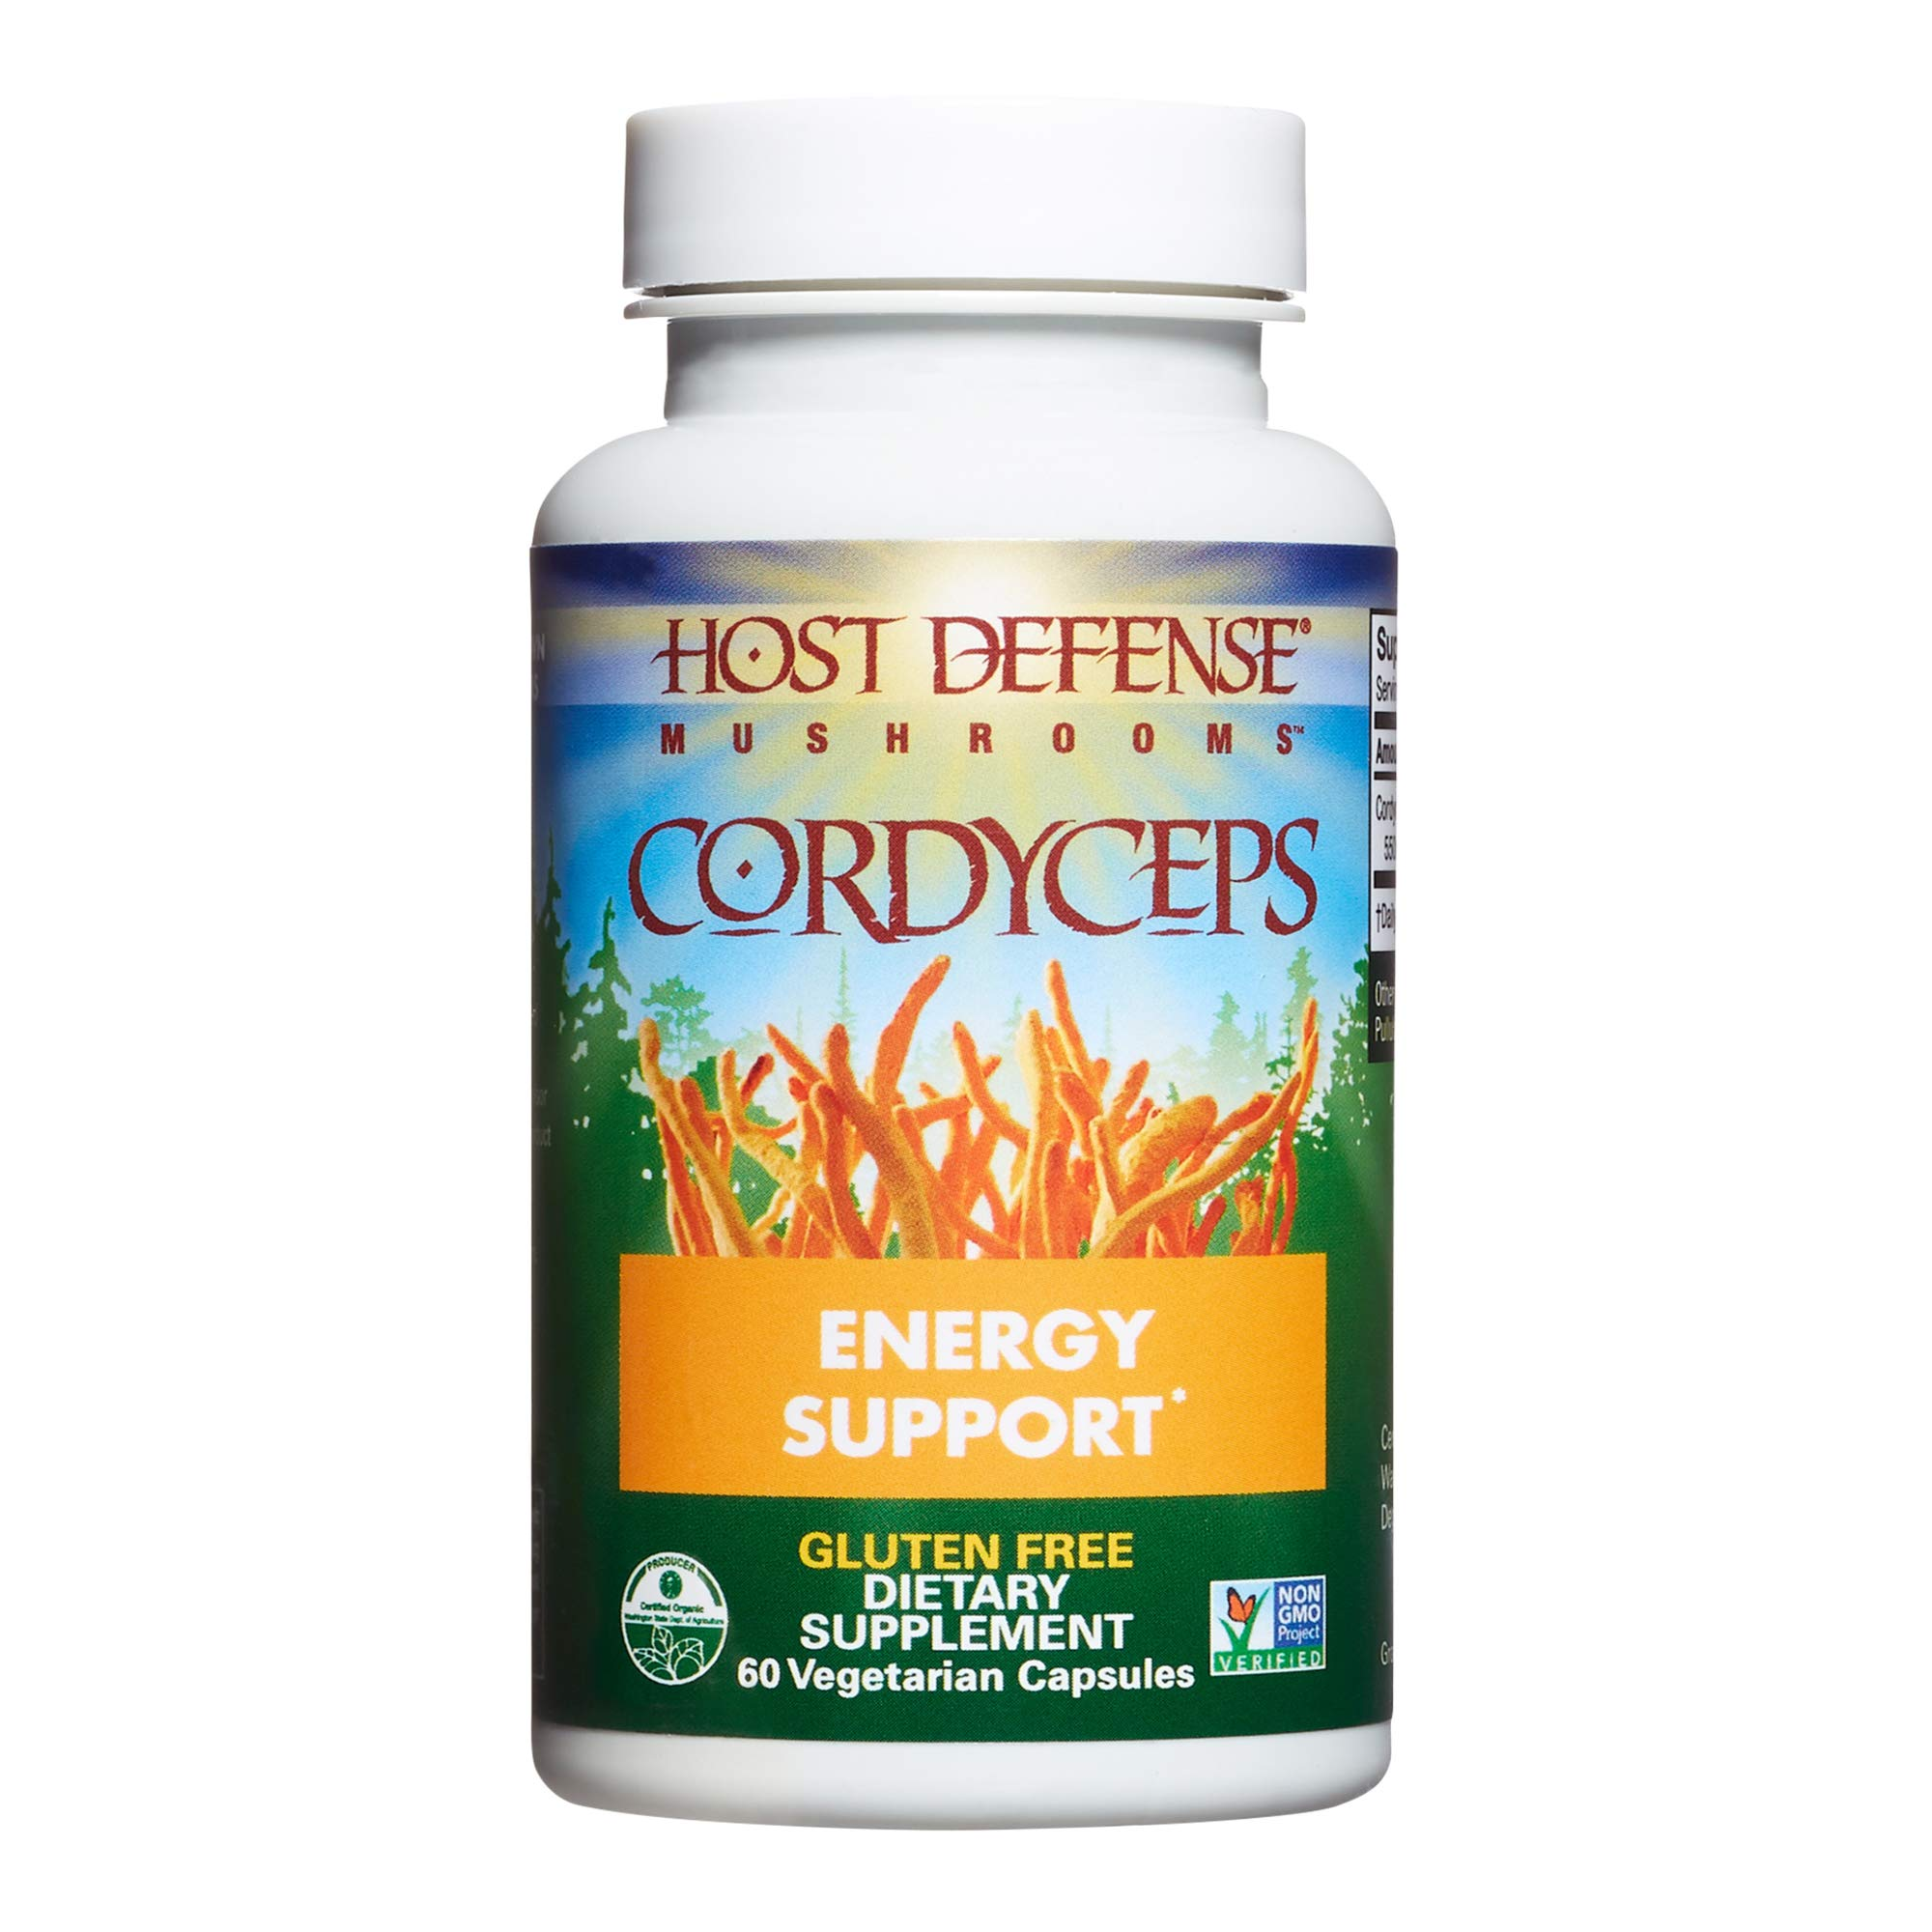 Host Defense, Cordyceps Capsules, Energy and Stamina Support, Daily Dietary Supplement, USDA Organic, 60 Vegetarian Capsules (30 Servings)